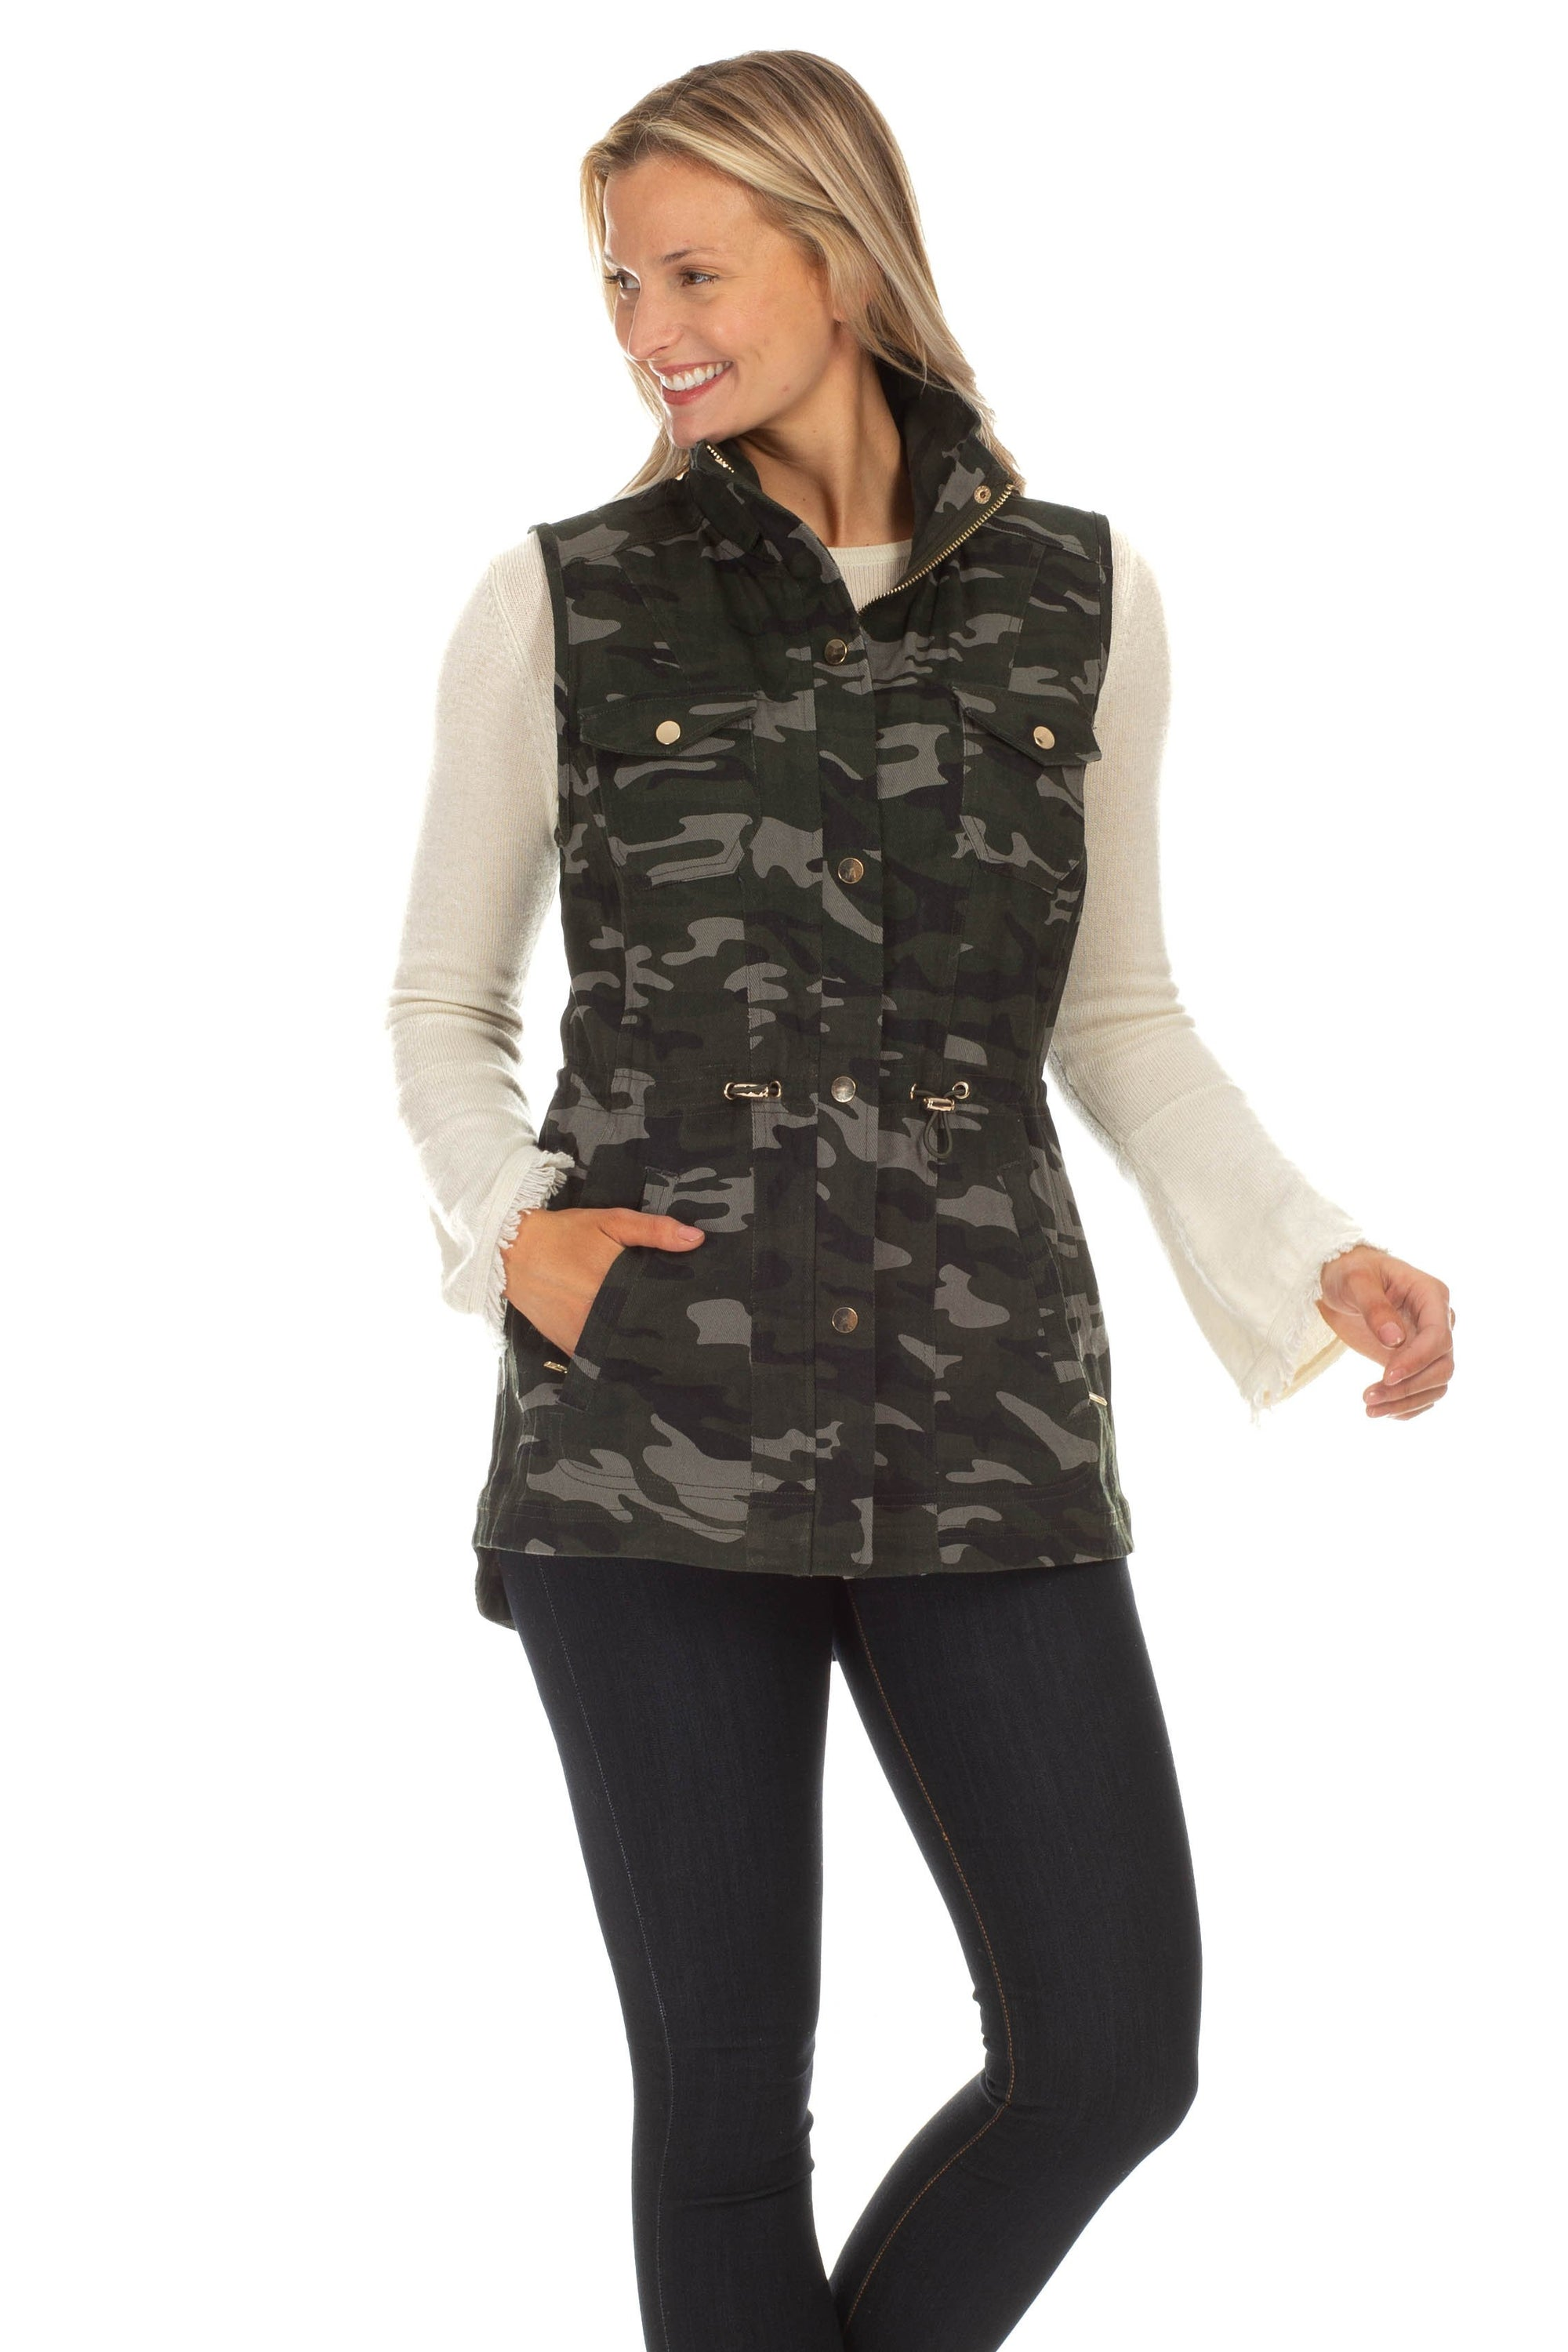 Sumner Camouflage Vest at {price}